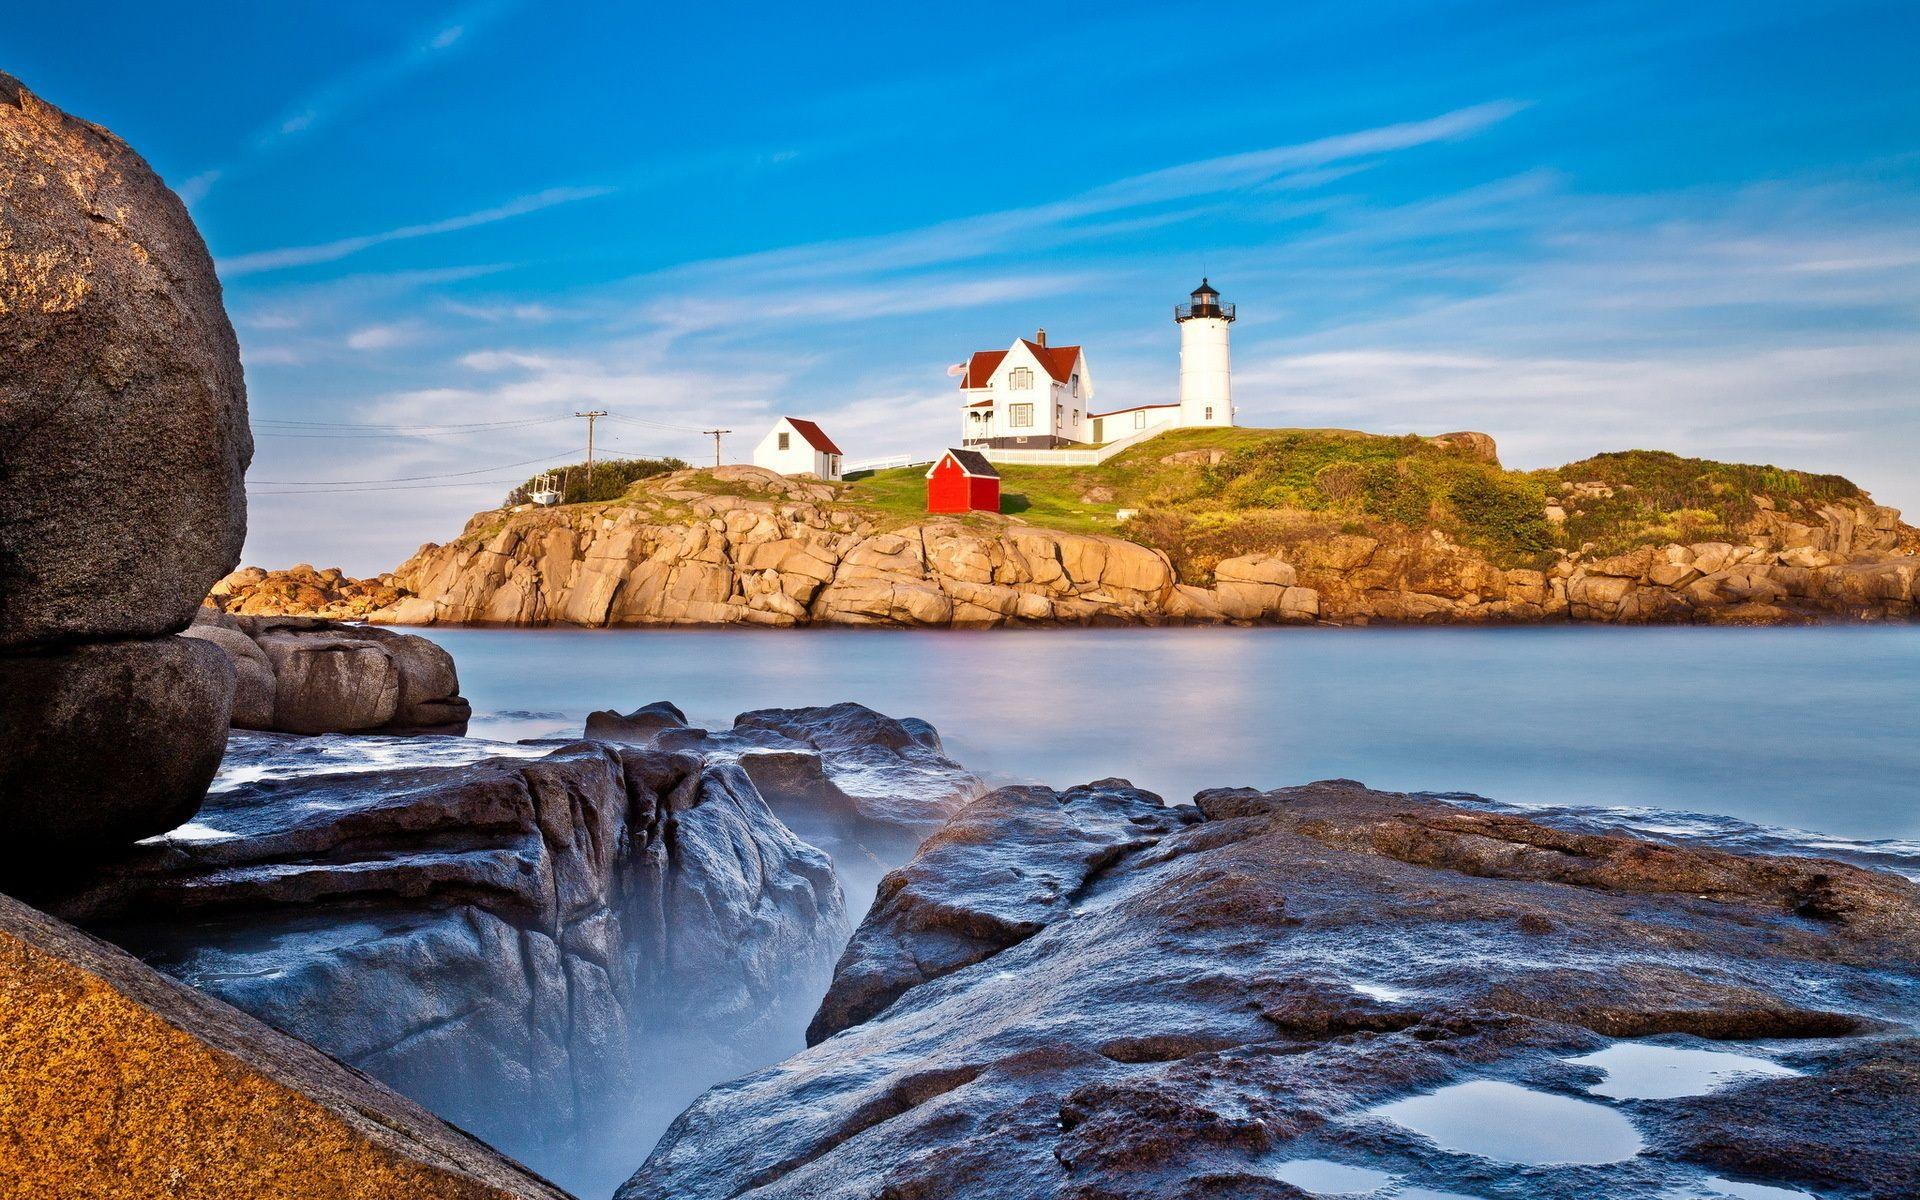 Lighthouse Desktop Wallpapers High Definition, Full HDQ Lighthouse